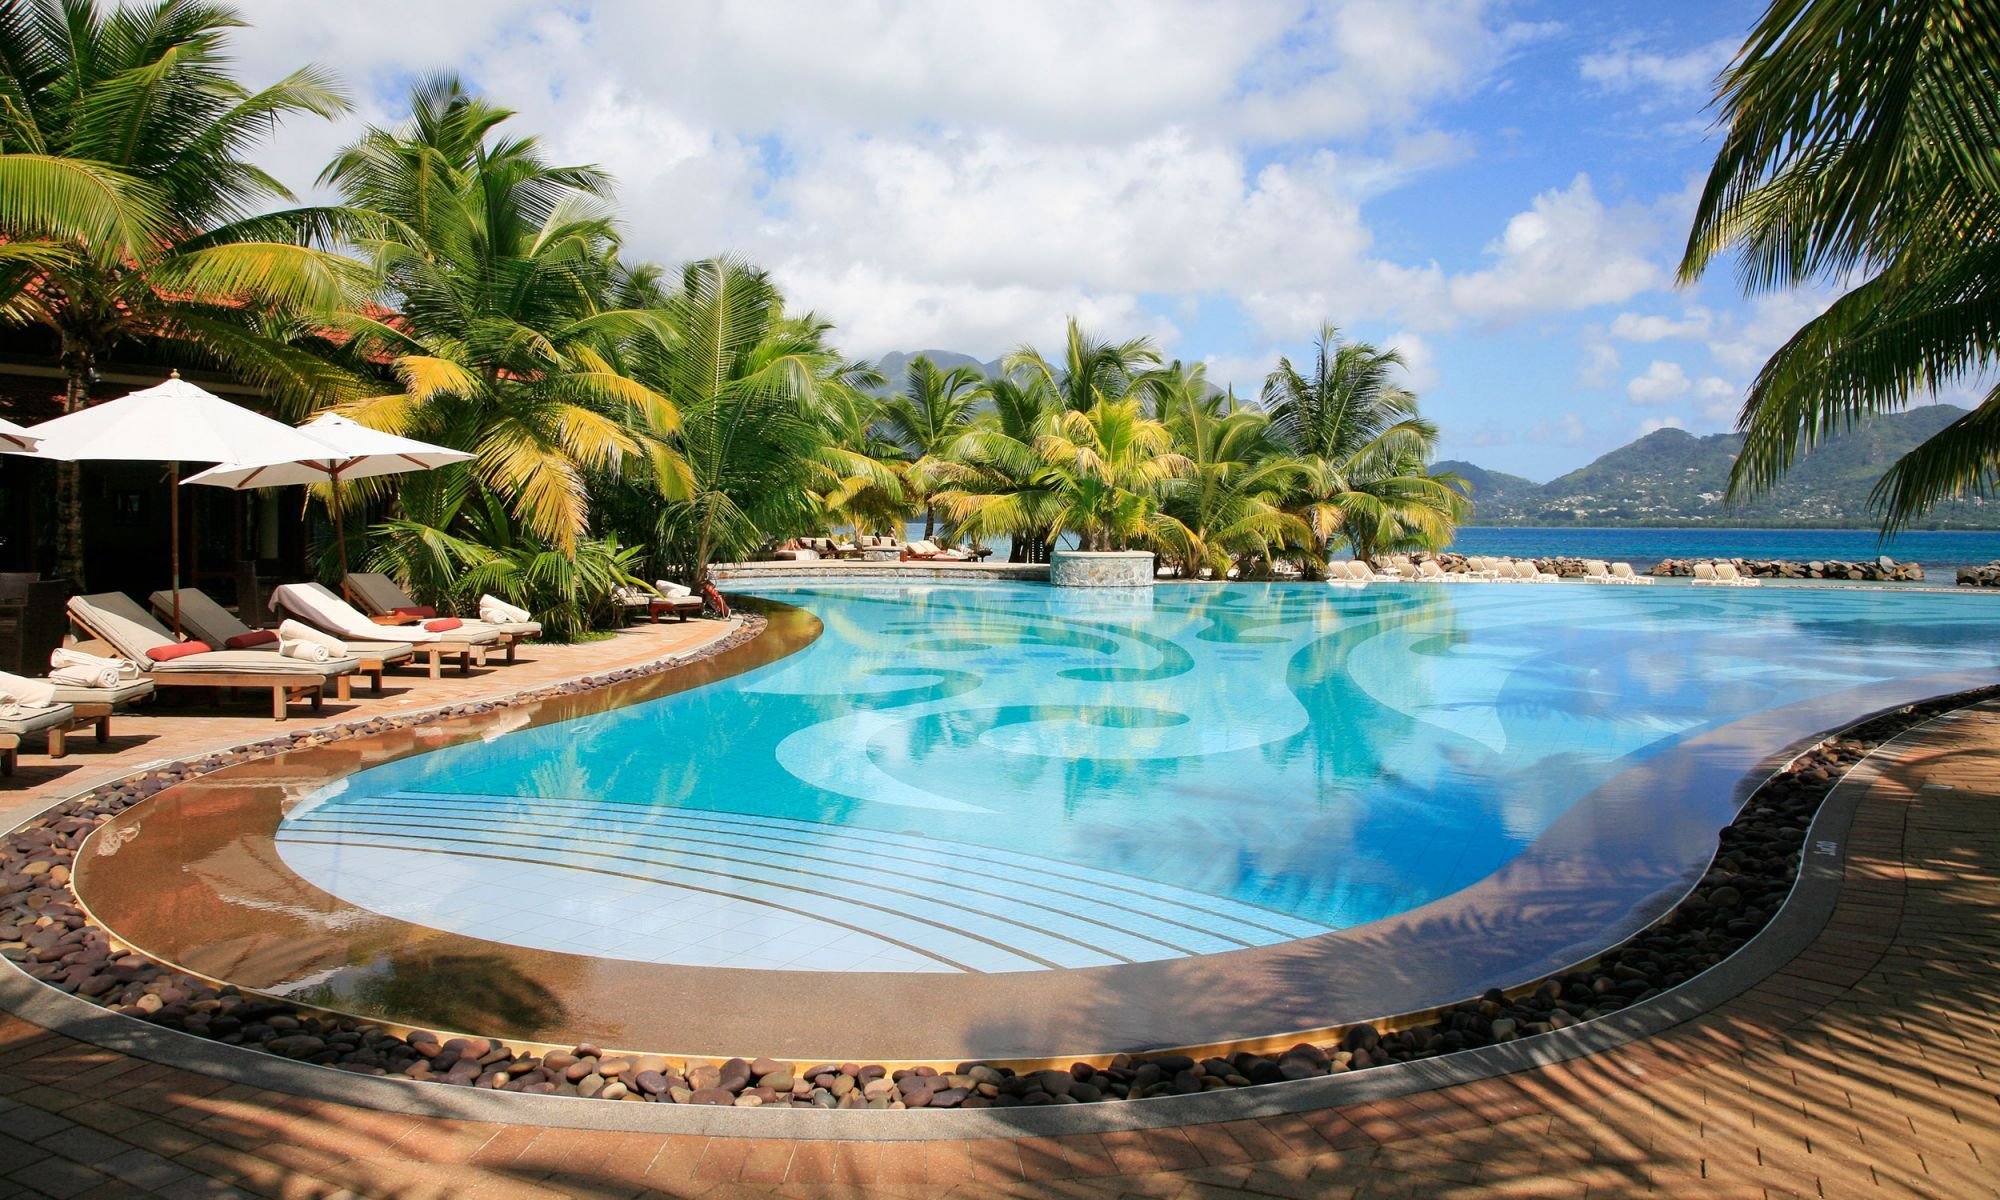 piscine paradisiaque de l h tel sainte anne aux seychelles hotel sainte anne les seychelles. Black Bedroom Furniture Sets. Home Design Ideas